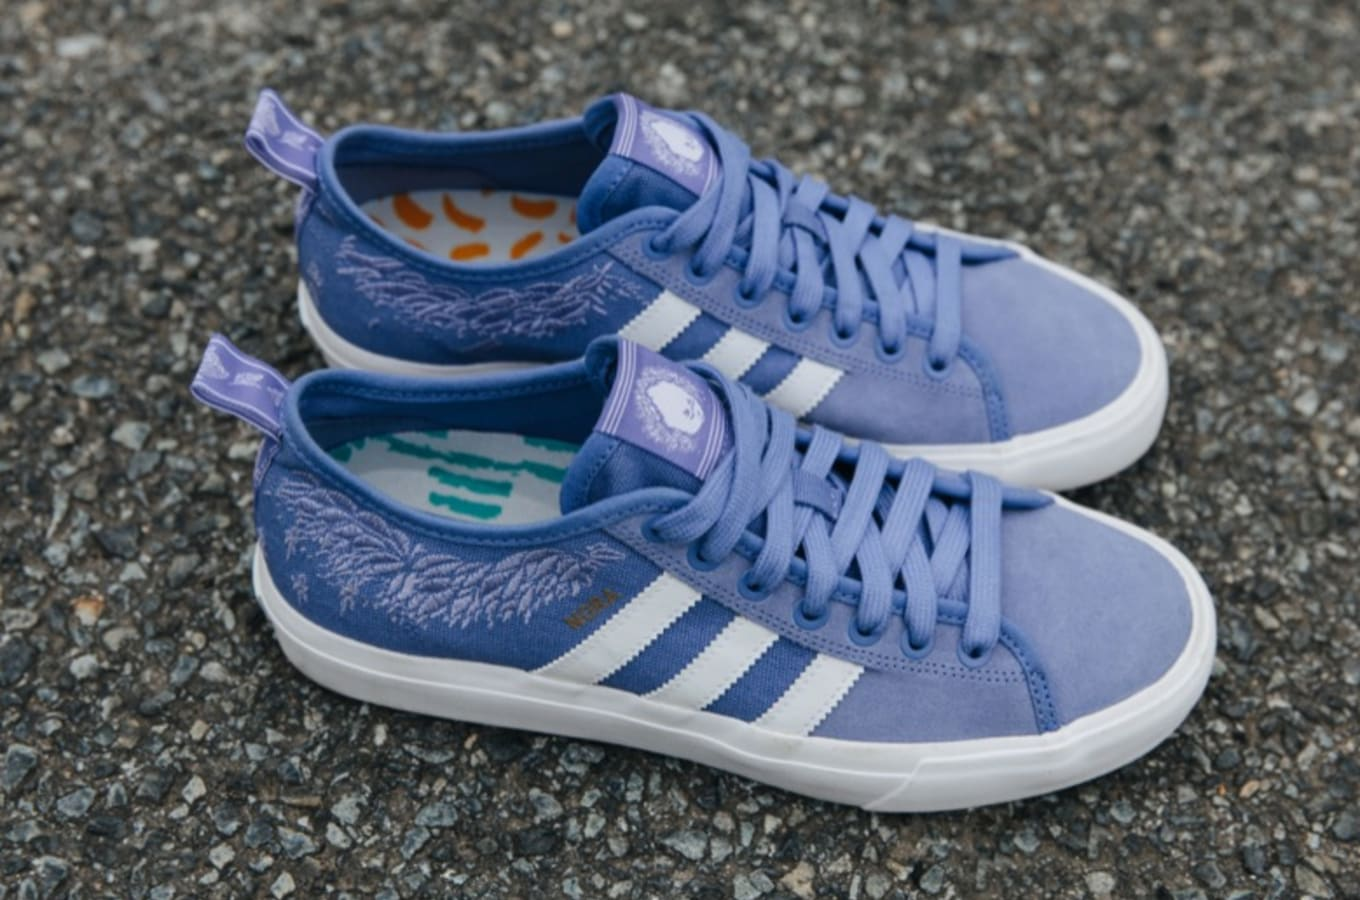 8b2c21da26a Pro Skater Puts Her Spin on Adidas Silhouette